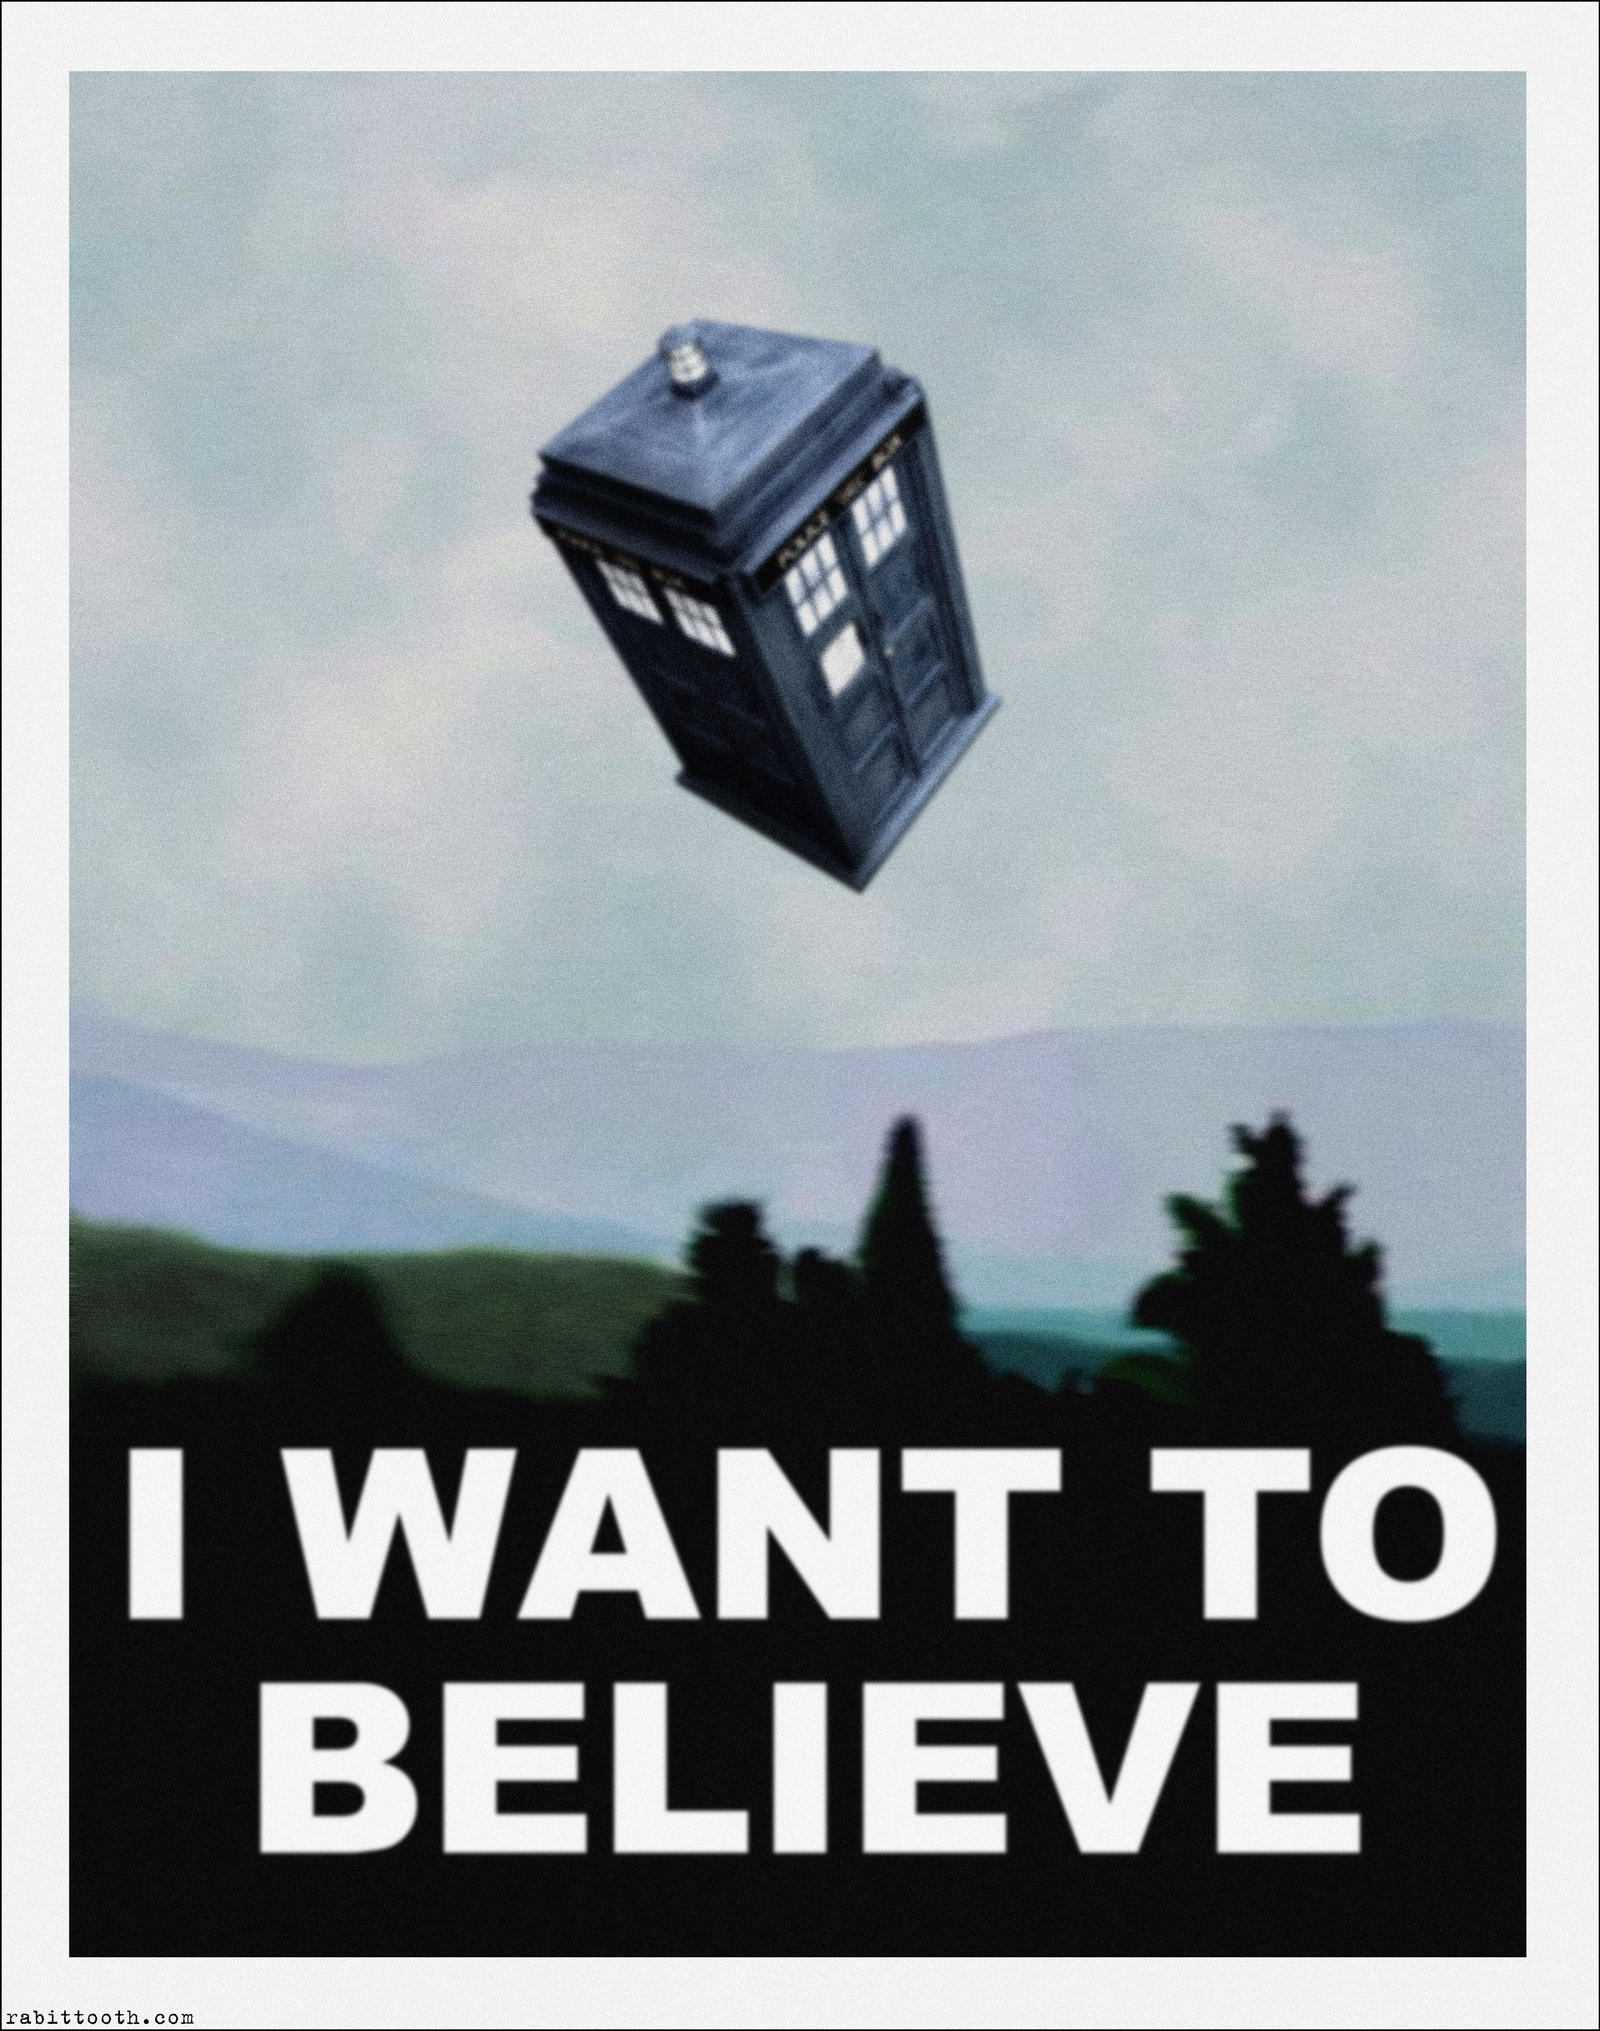 tardis___dr__who_x_files_i_want_to_belie